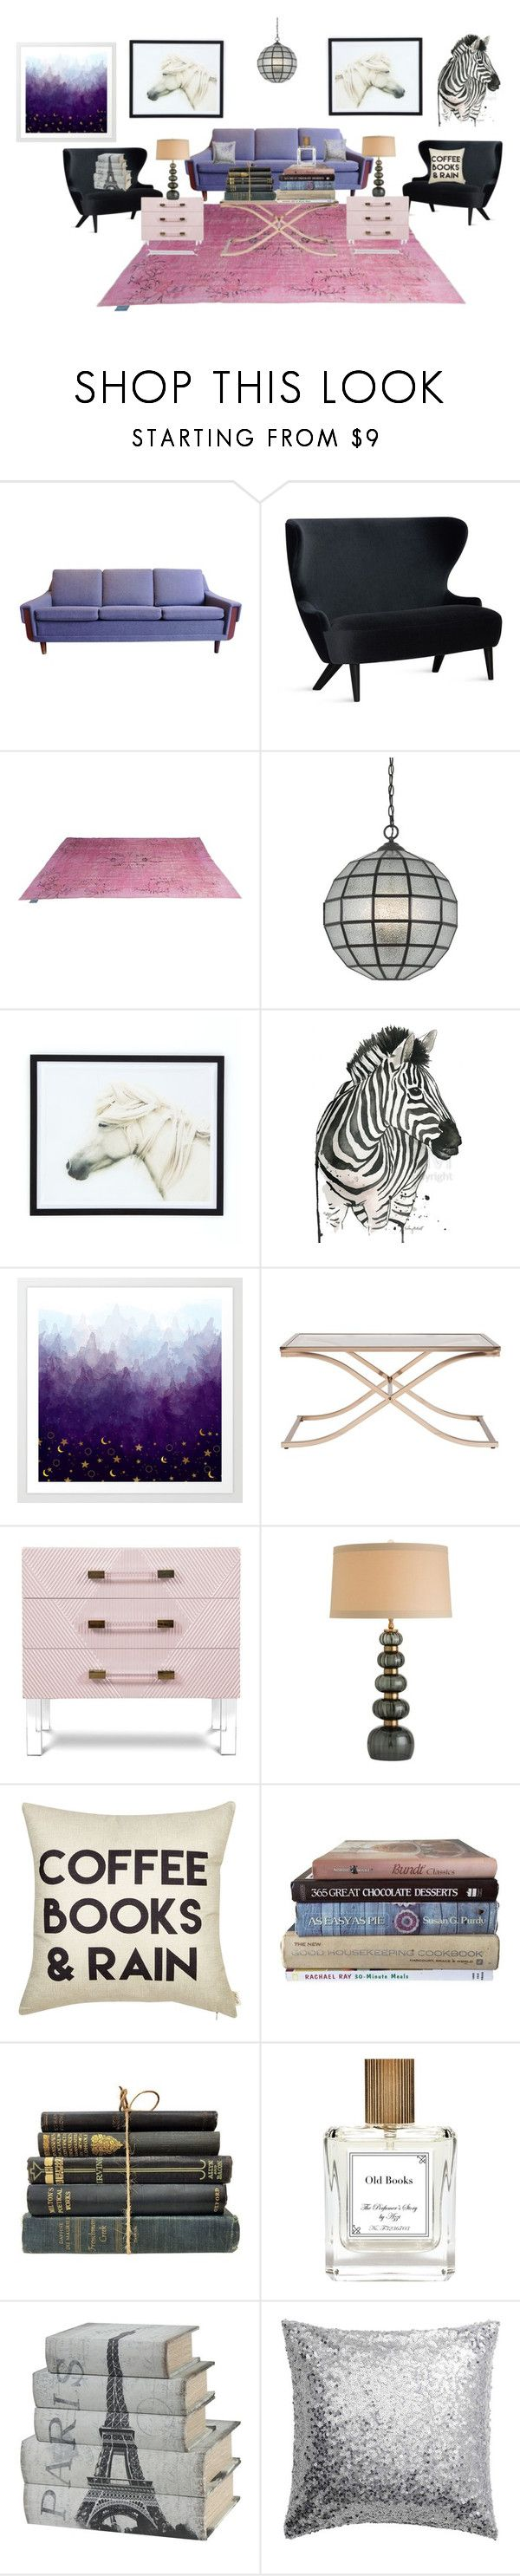 """""""The Equestrian Room"""" by paris55587 ❤ liked on Polyvore featuring interior, interiors, interior design, home, home decor, interior decorating, Tom Dixon, Arteriors and The Perfumer's Story by Azzi"""